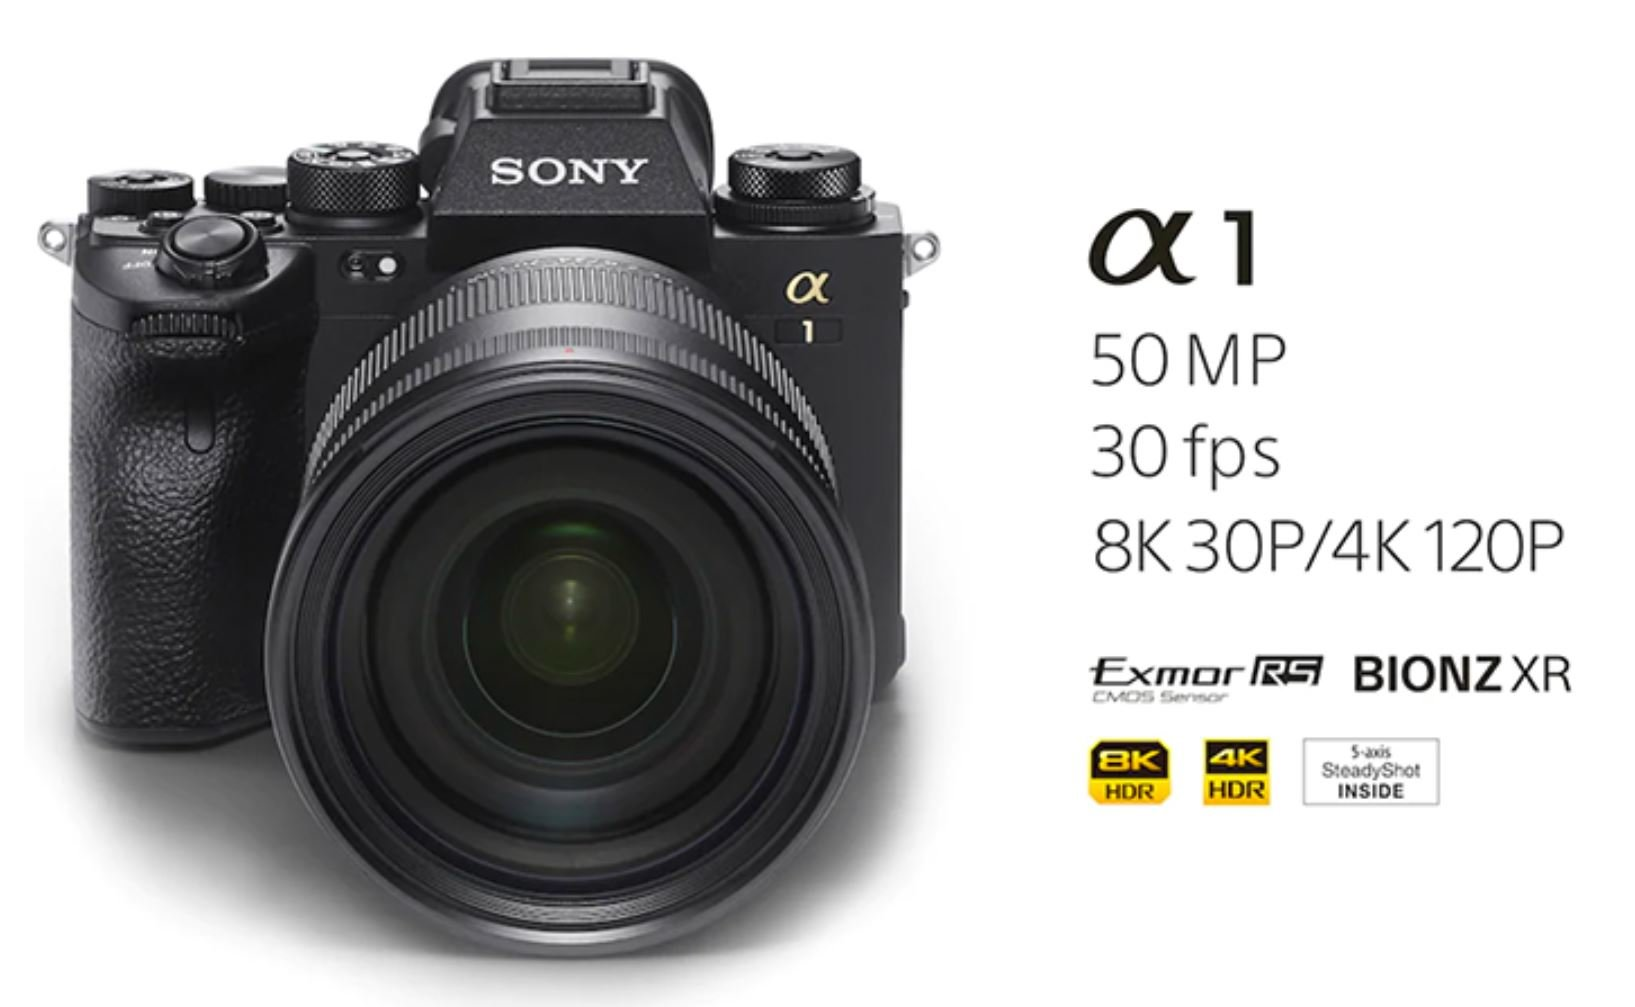 The new Sony Alpha 1